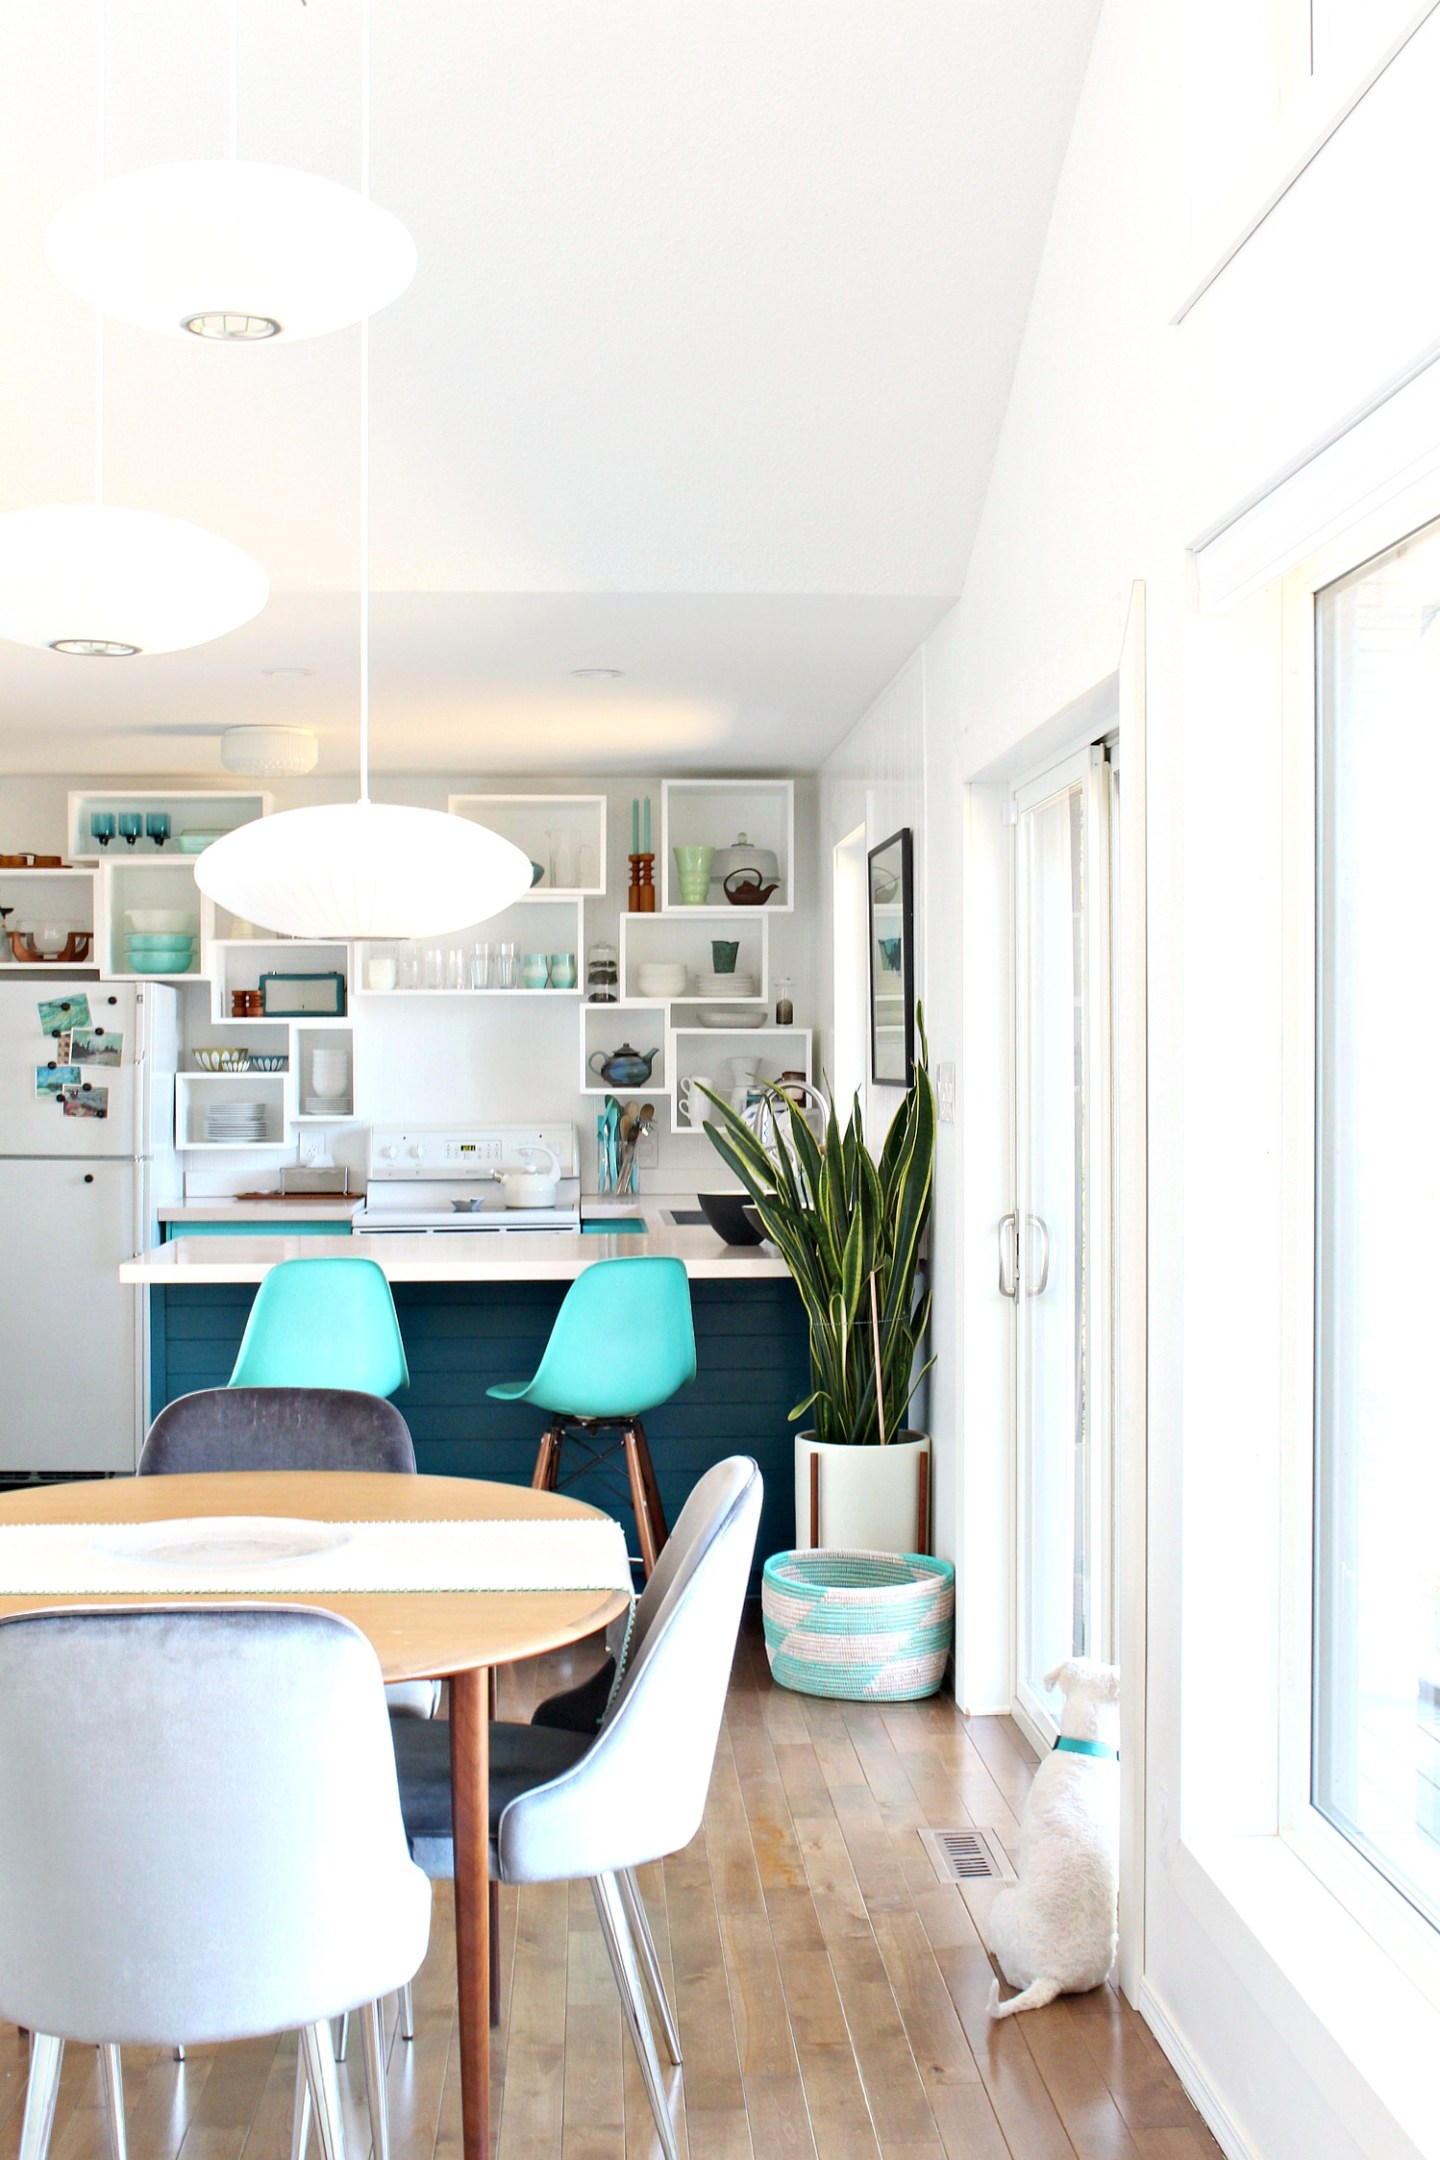 How to Build Wall Cubbies   Fresh Take on Kitchen Open Shelving. Teal Kitchen Design with Unique Spin on Open Shelving #openshelving #kitchen #diykitchen